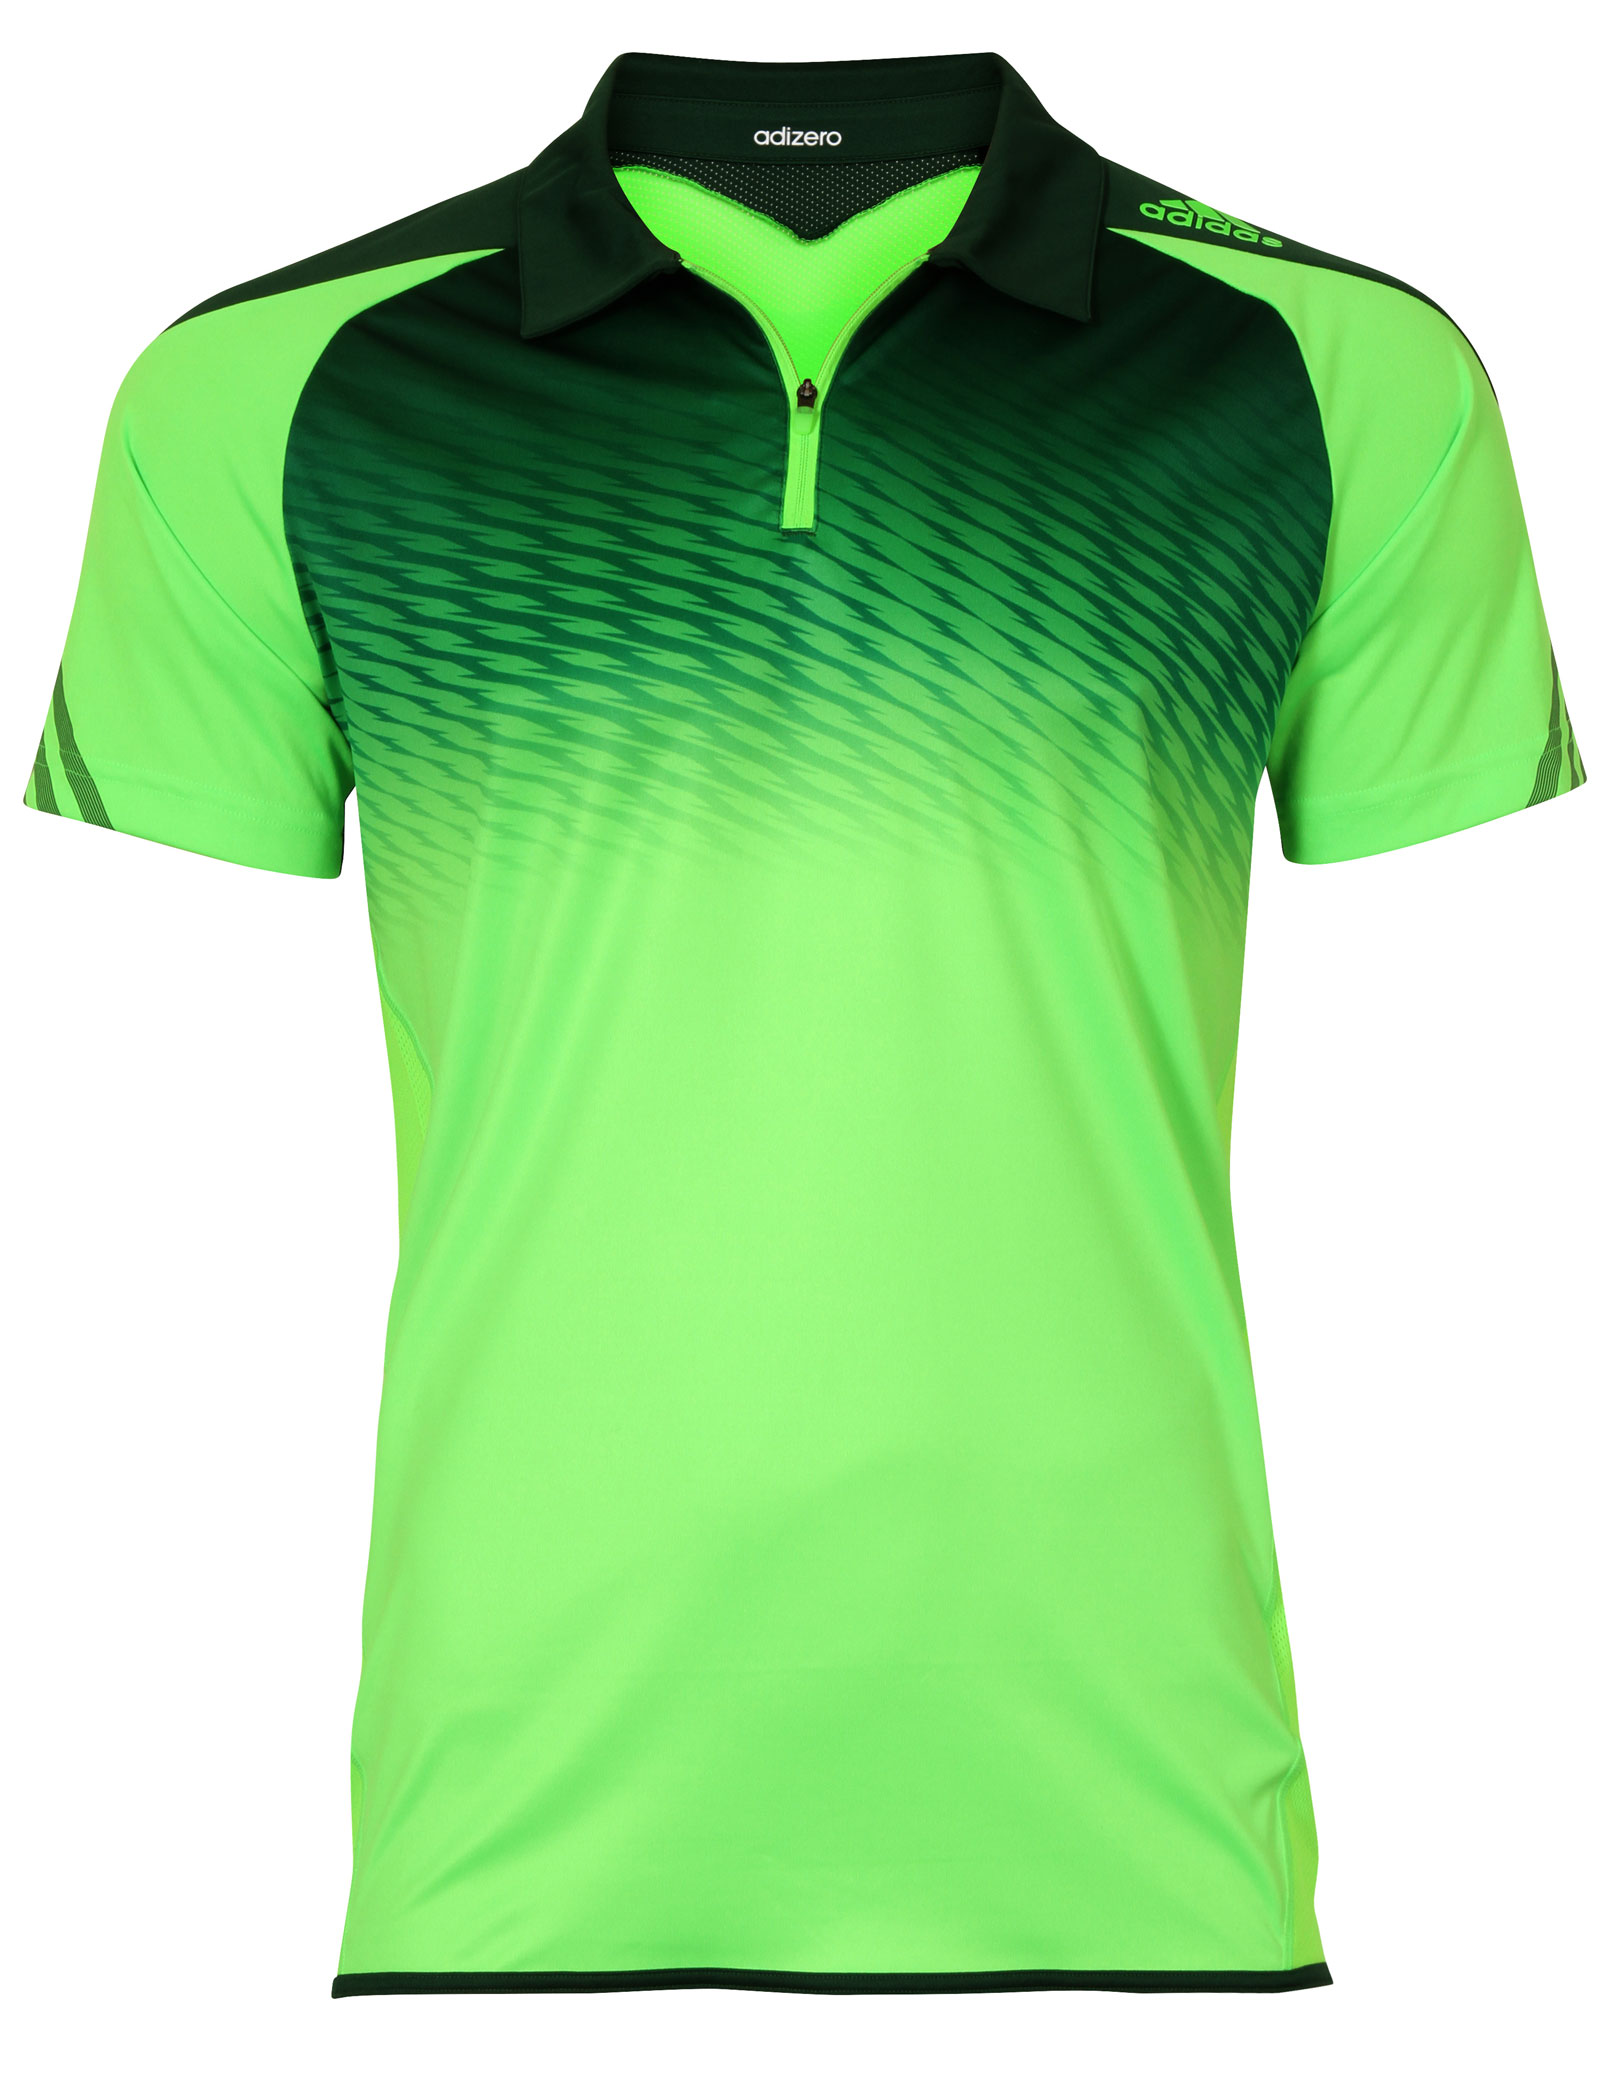 New-adidas-Adizero-Polo-Climacool-Mens-Tennis-Polo-